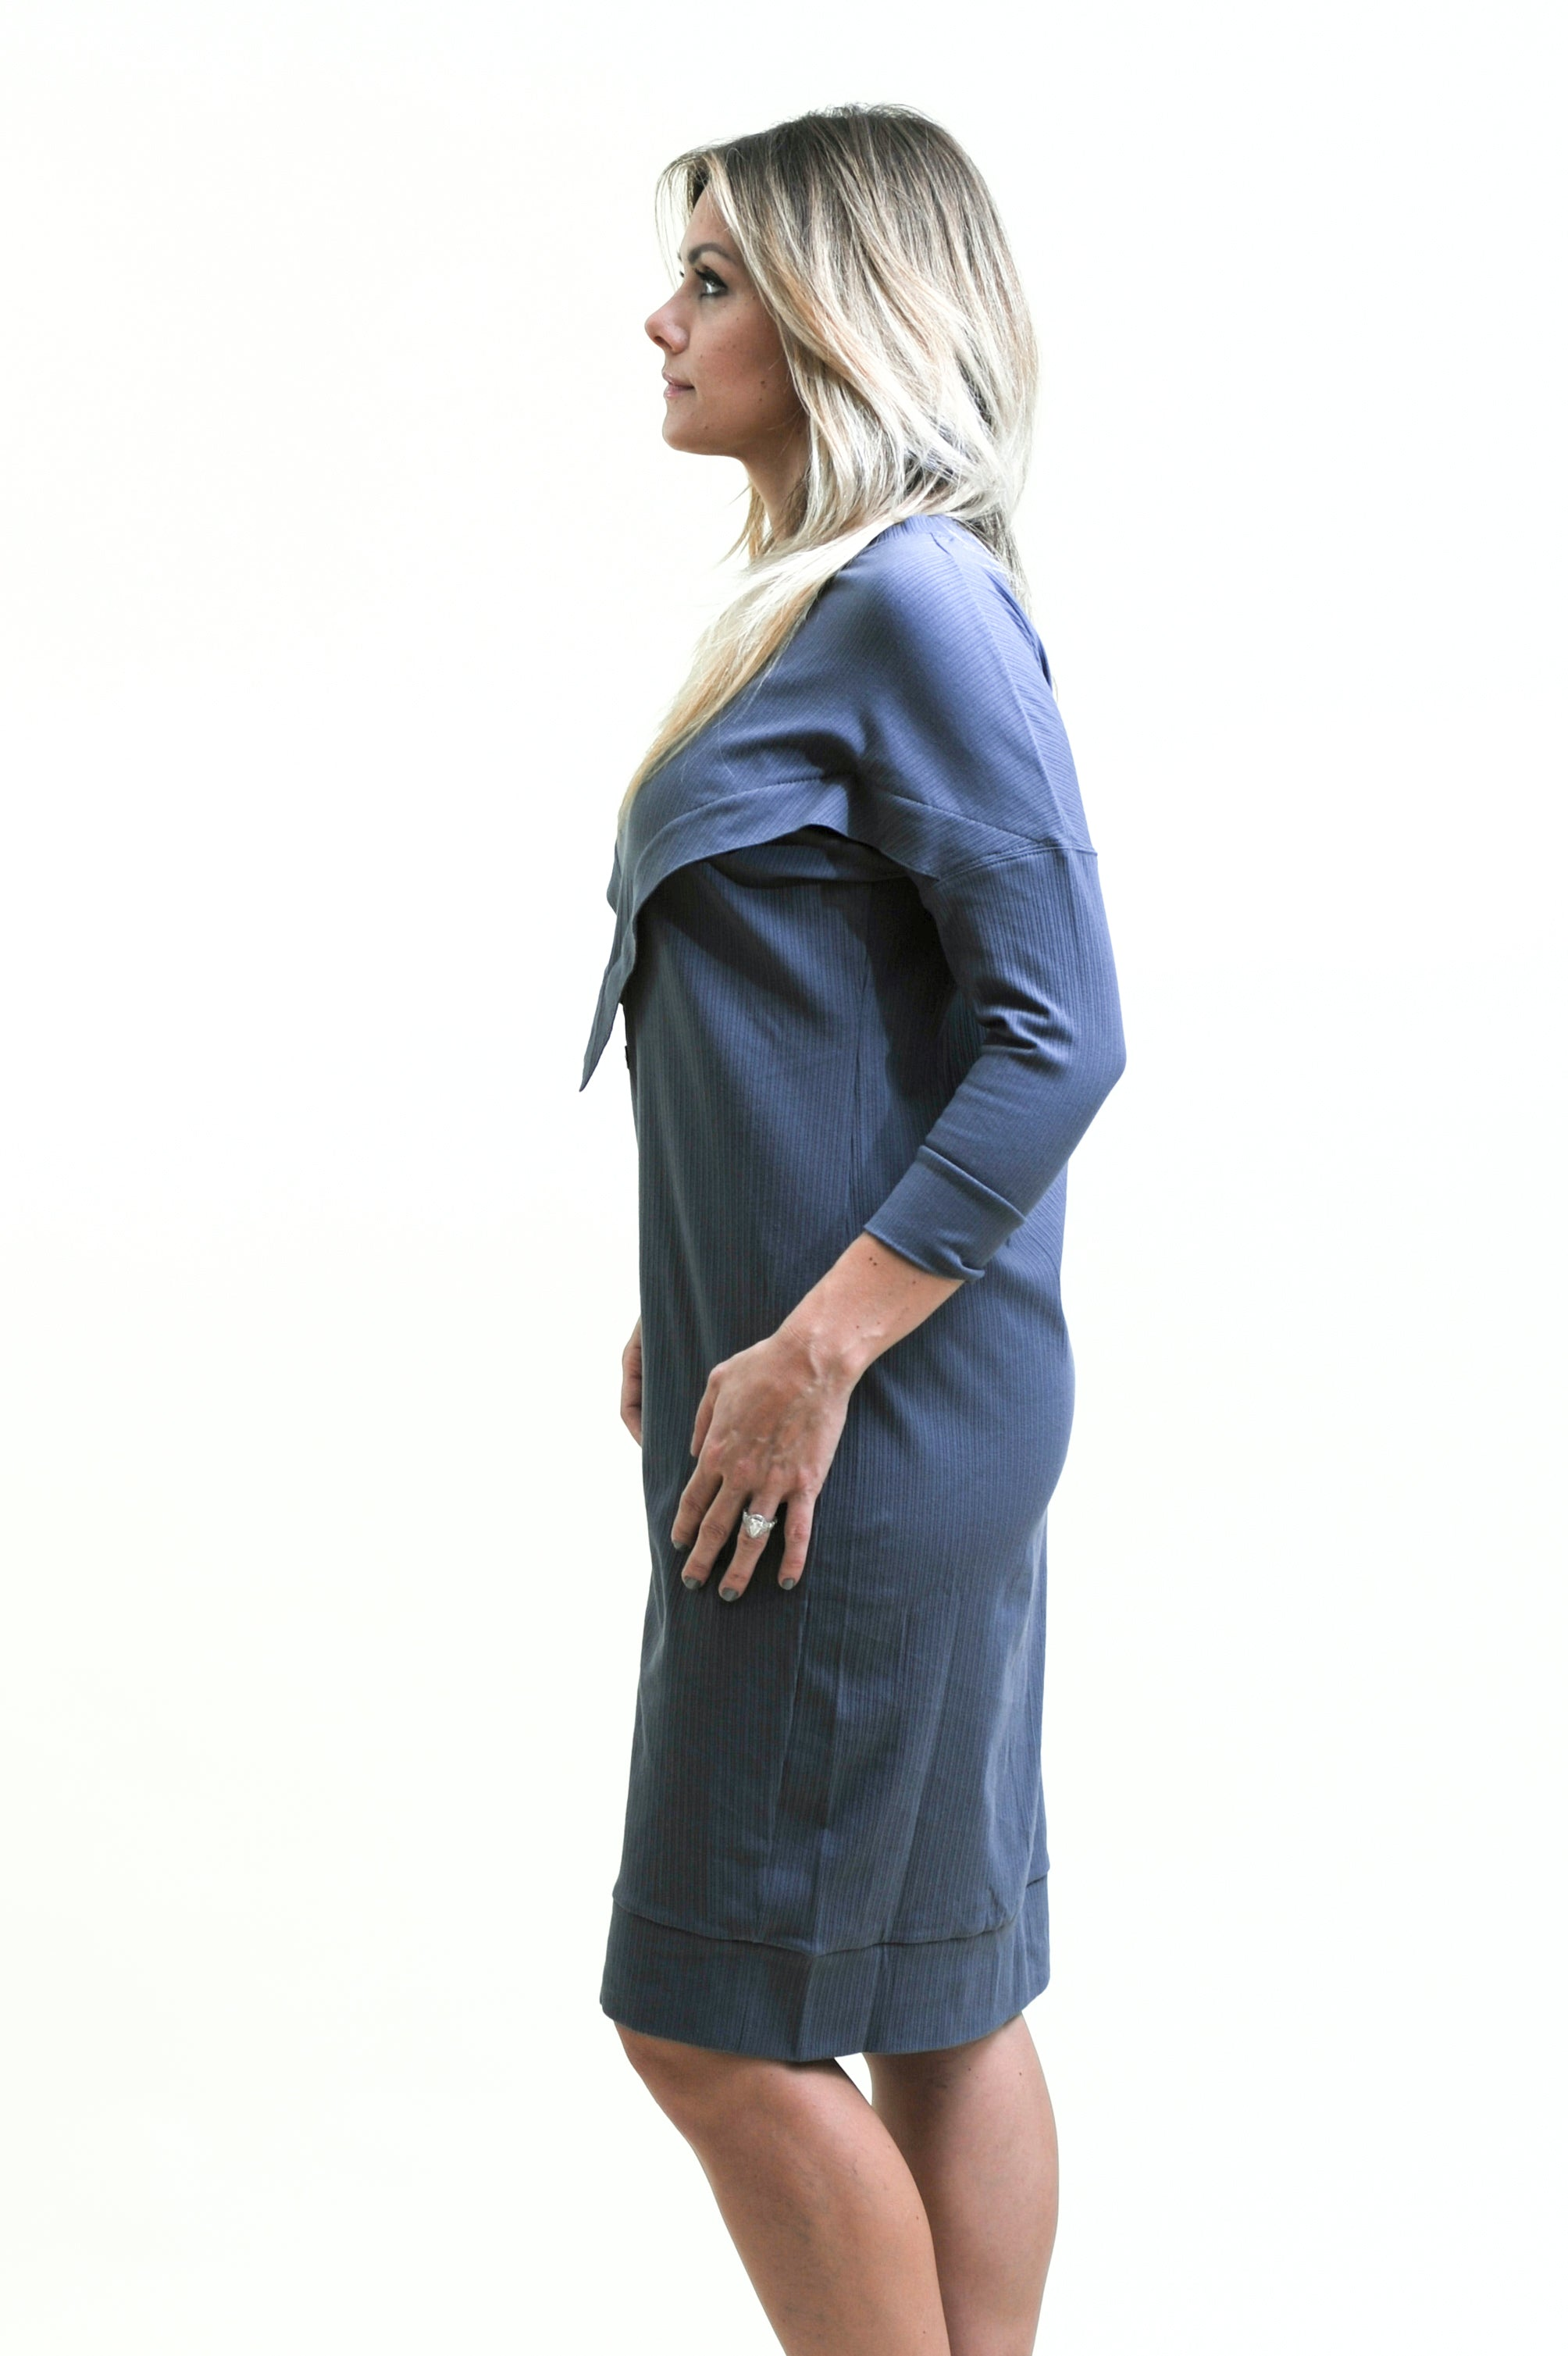 Final Sale! Ribbed Varsity Dress in Blue skin to skin contact dress for nursing and beyond